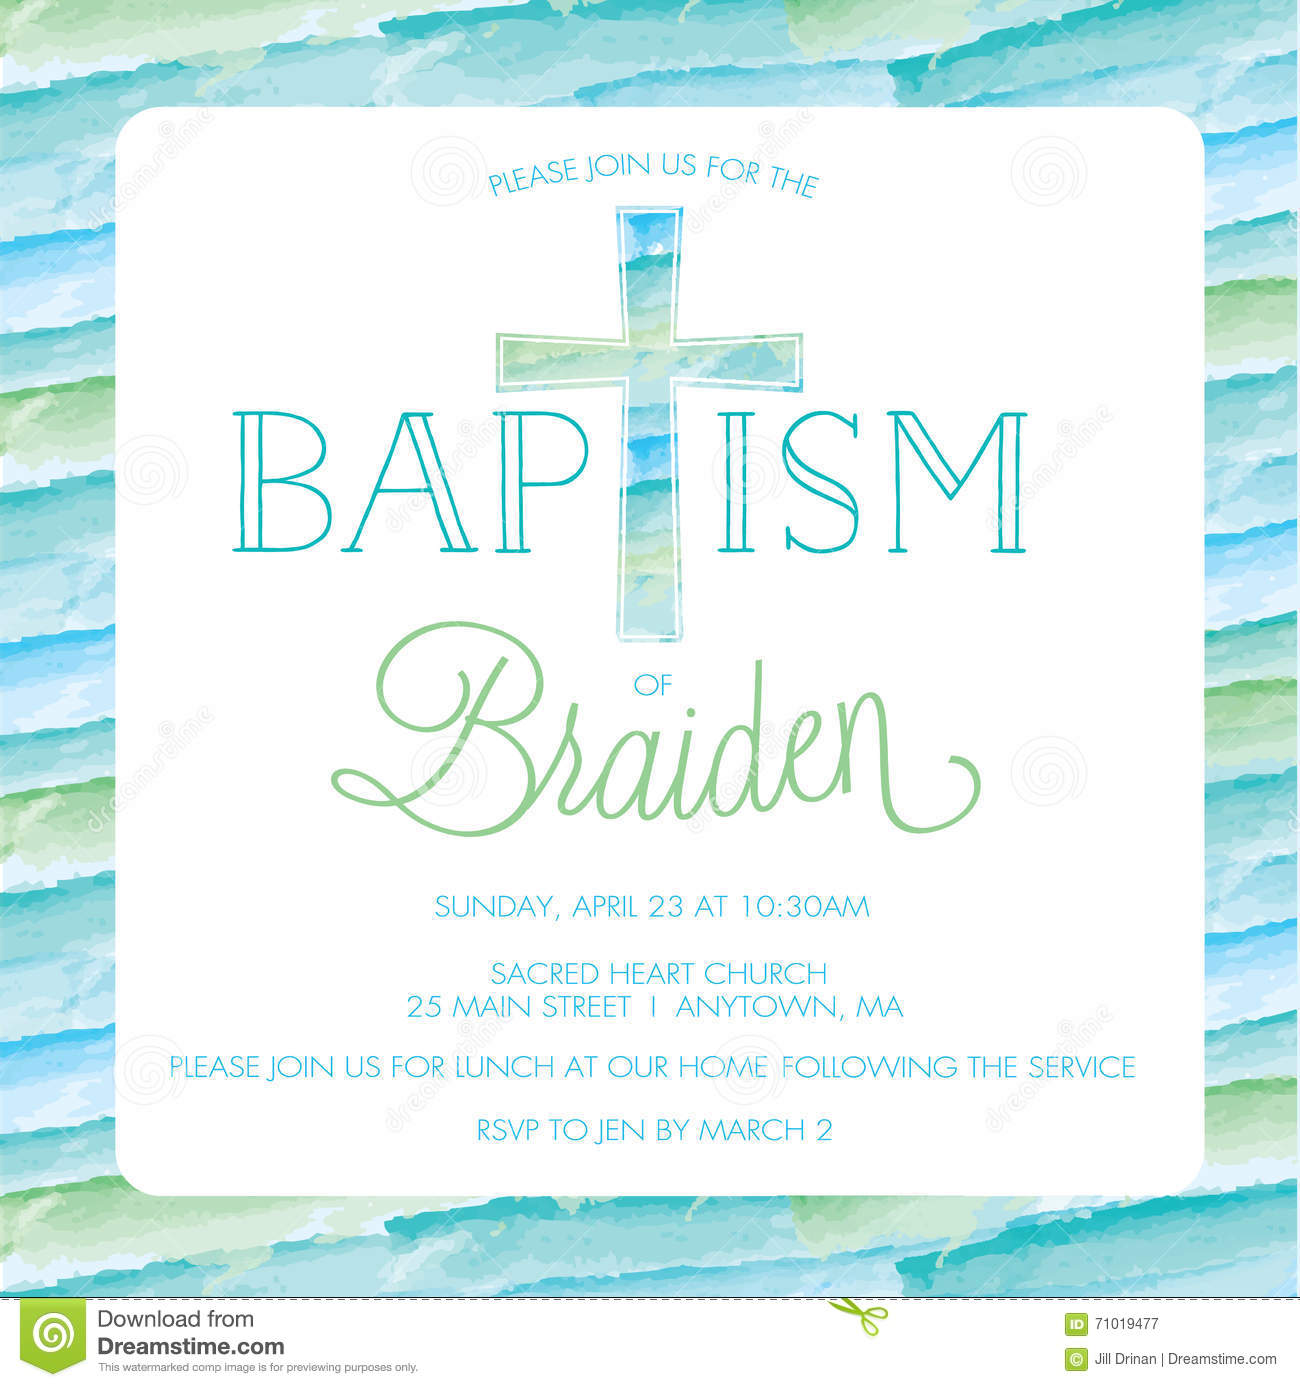 Baptism, Christening Invitation Template - Watercolor Cross, Background  Stock Vector - Illustration of watercolor, vector: 71019477